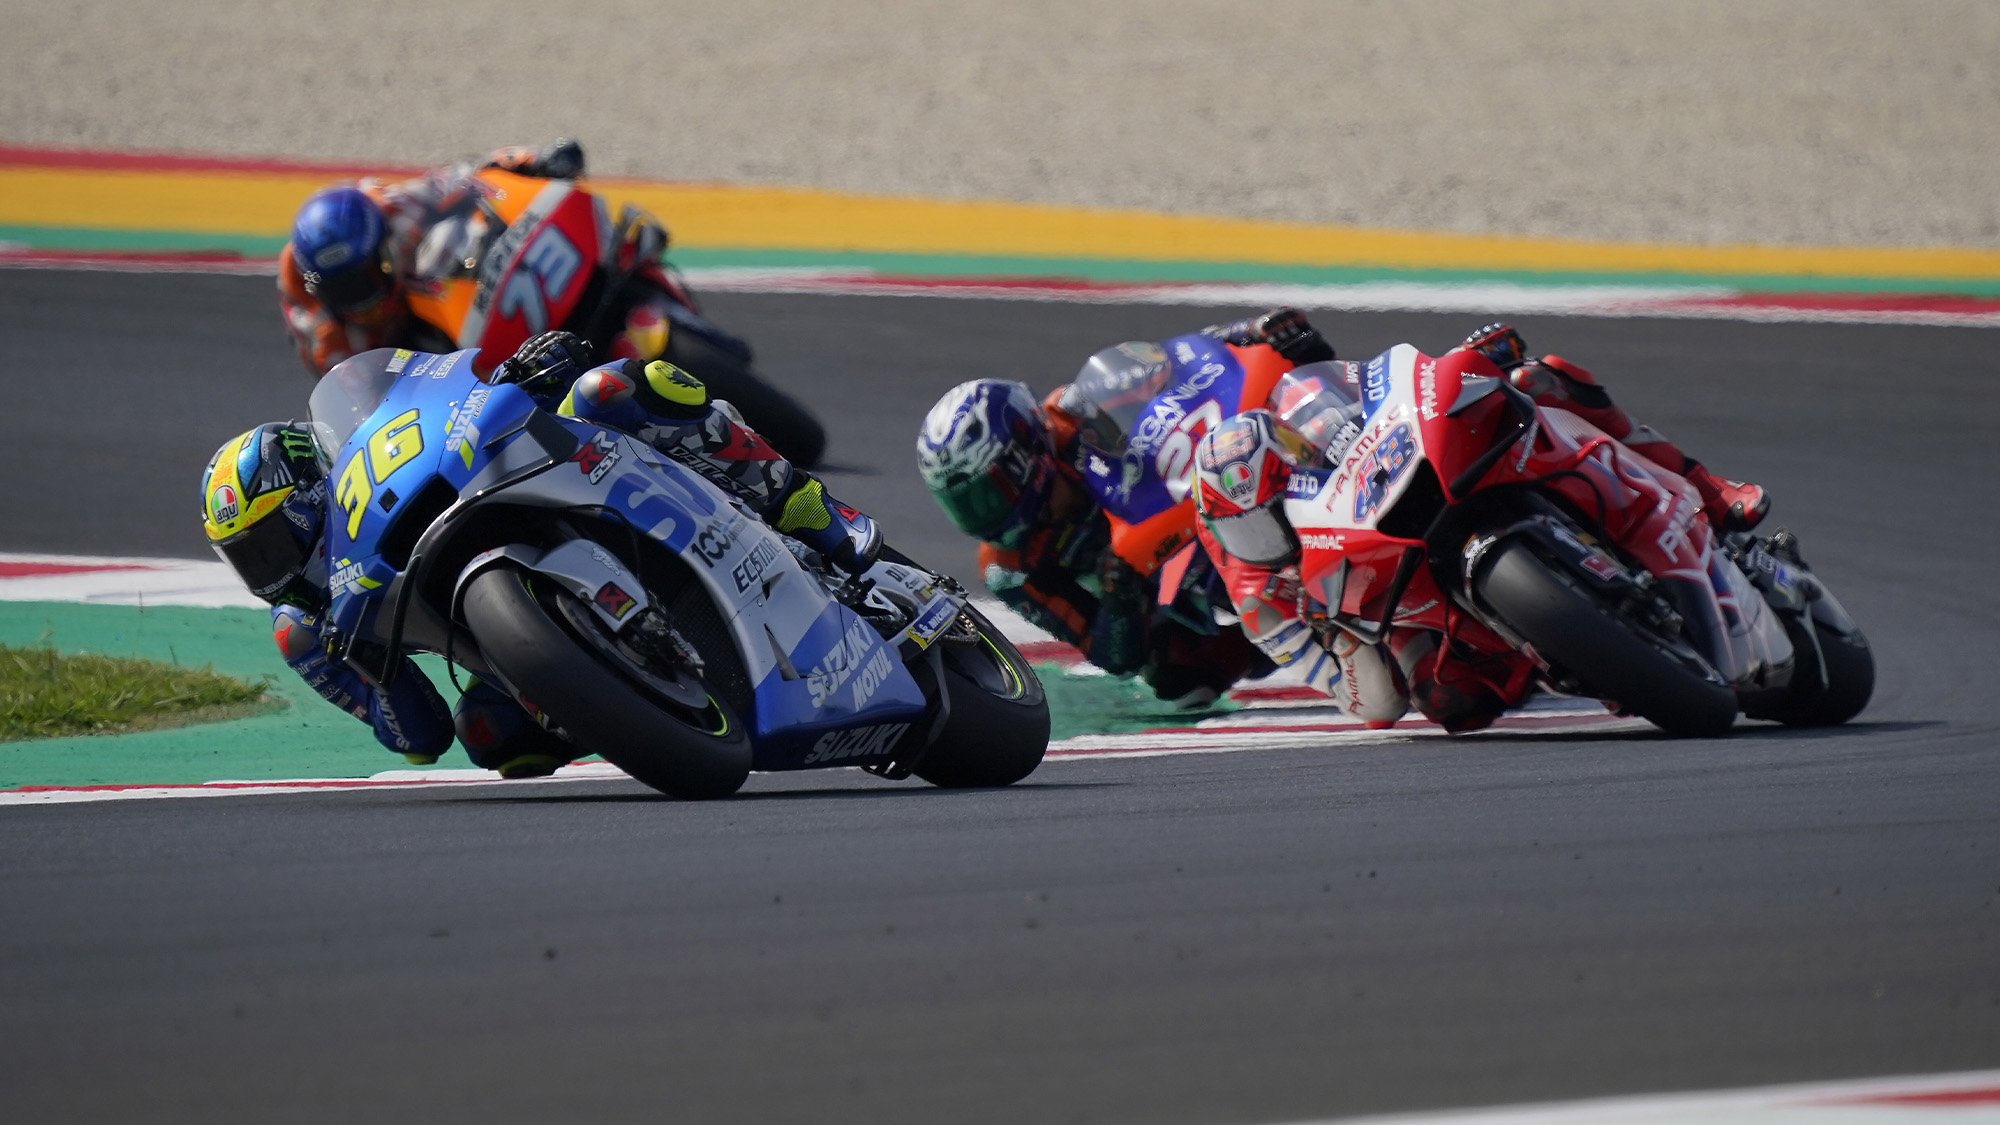 MotoGP: The best of Mat Oxley from 2020